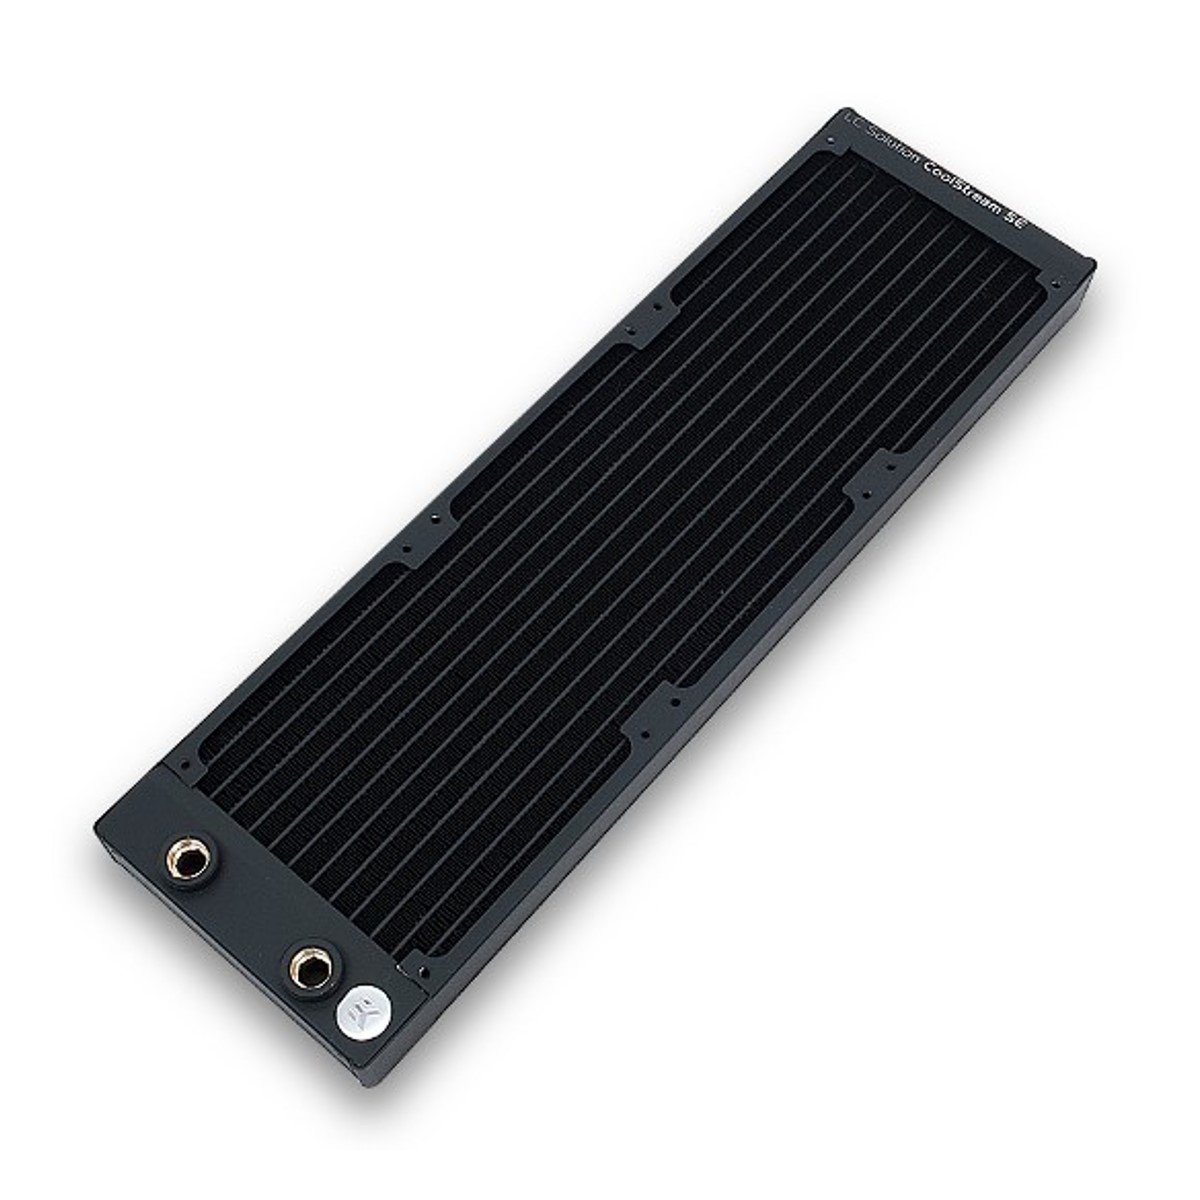 EKWB EK-CoolStream SE 360 Radiator, Slim Triple, Black